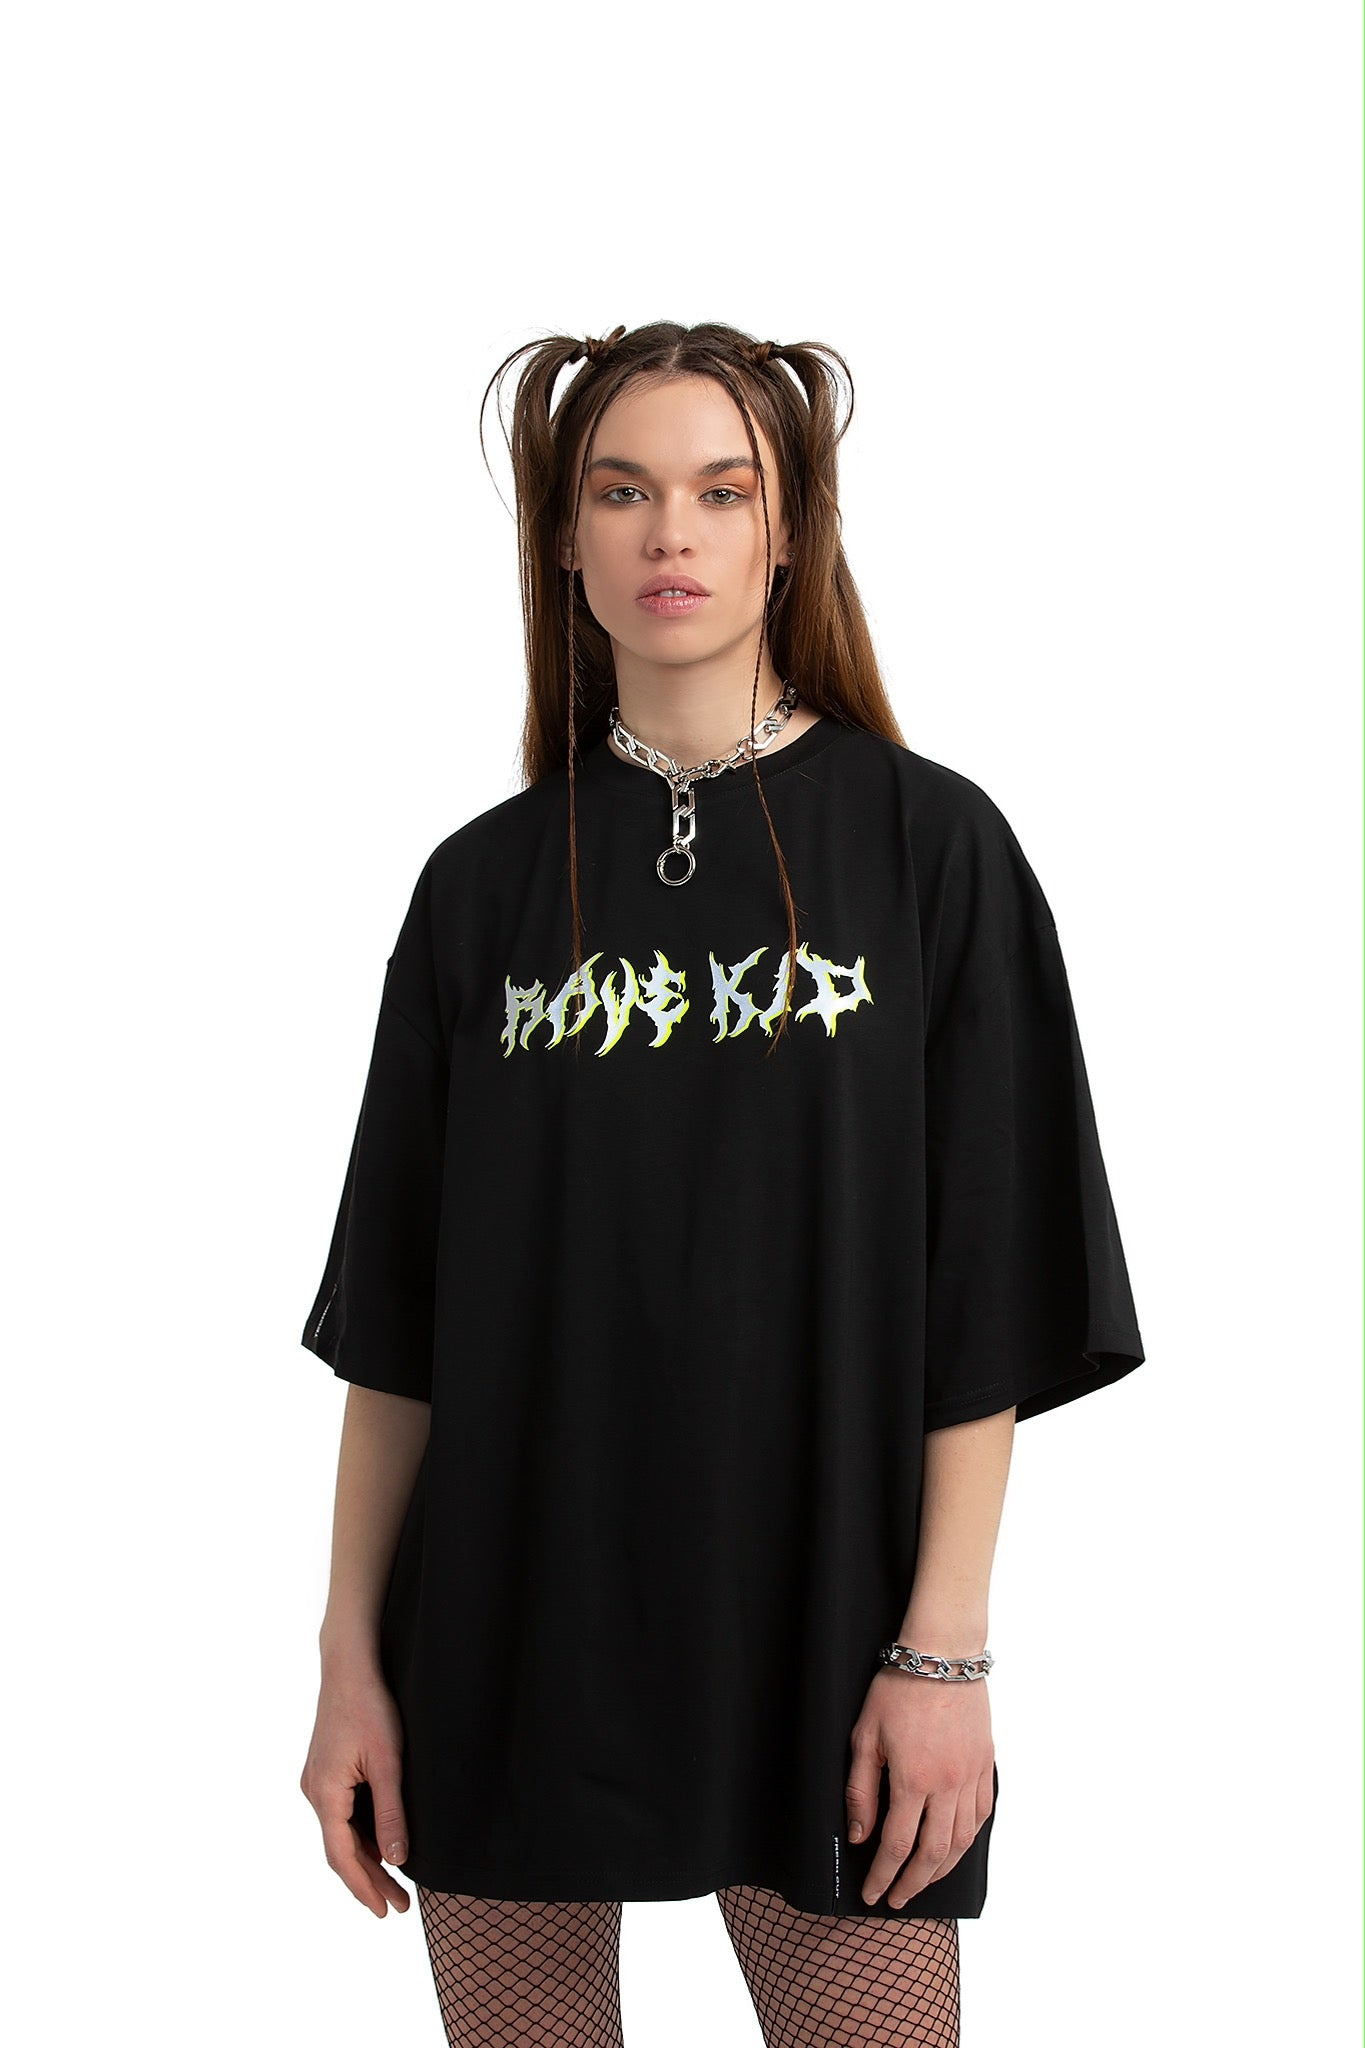 Rave Kid Unisex oversized T-shirt [black]